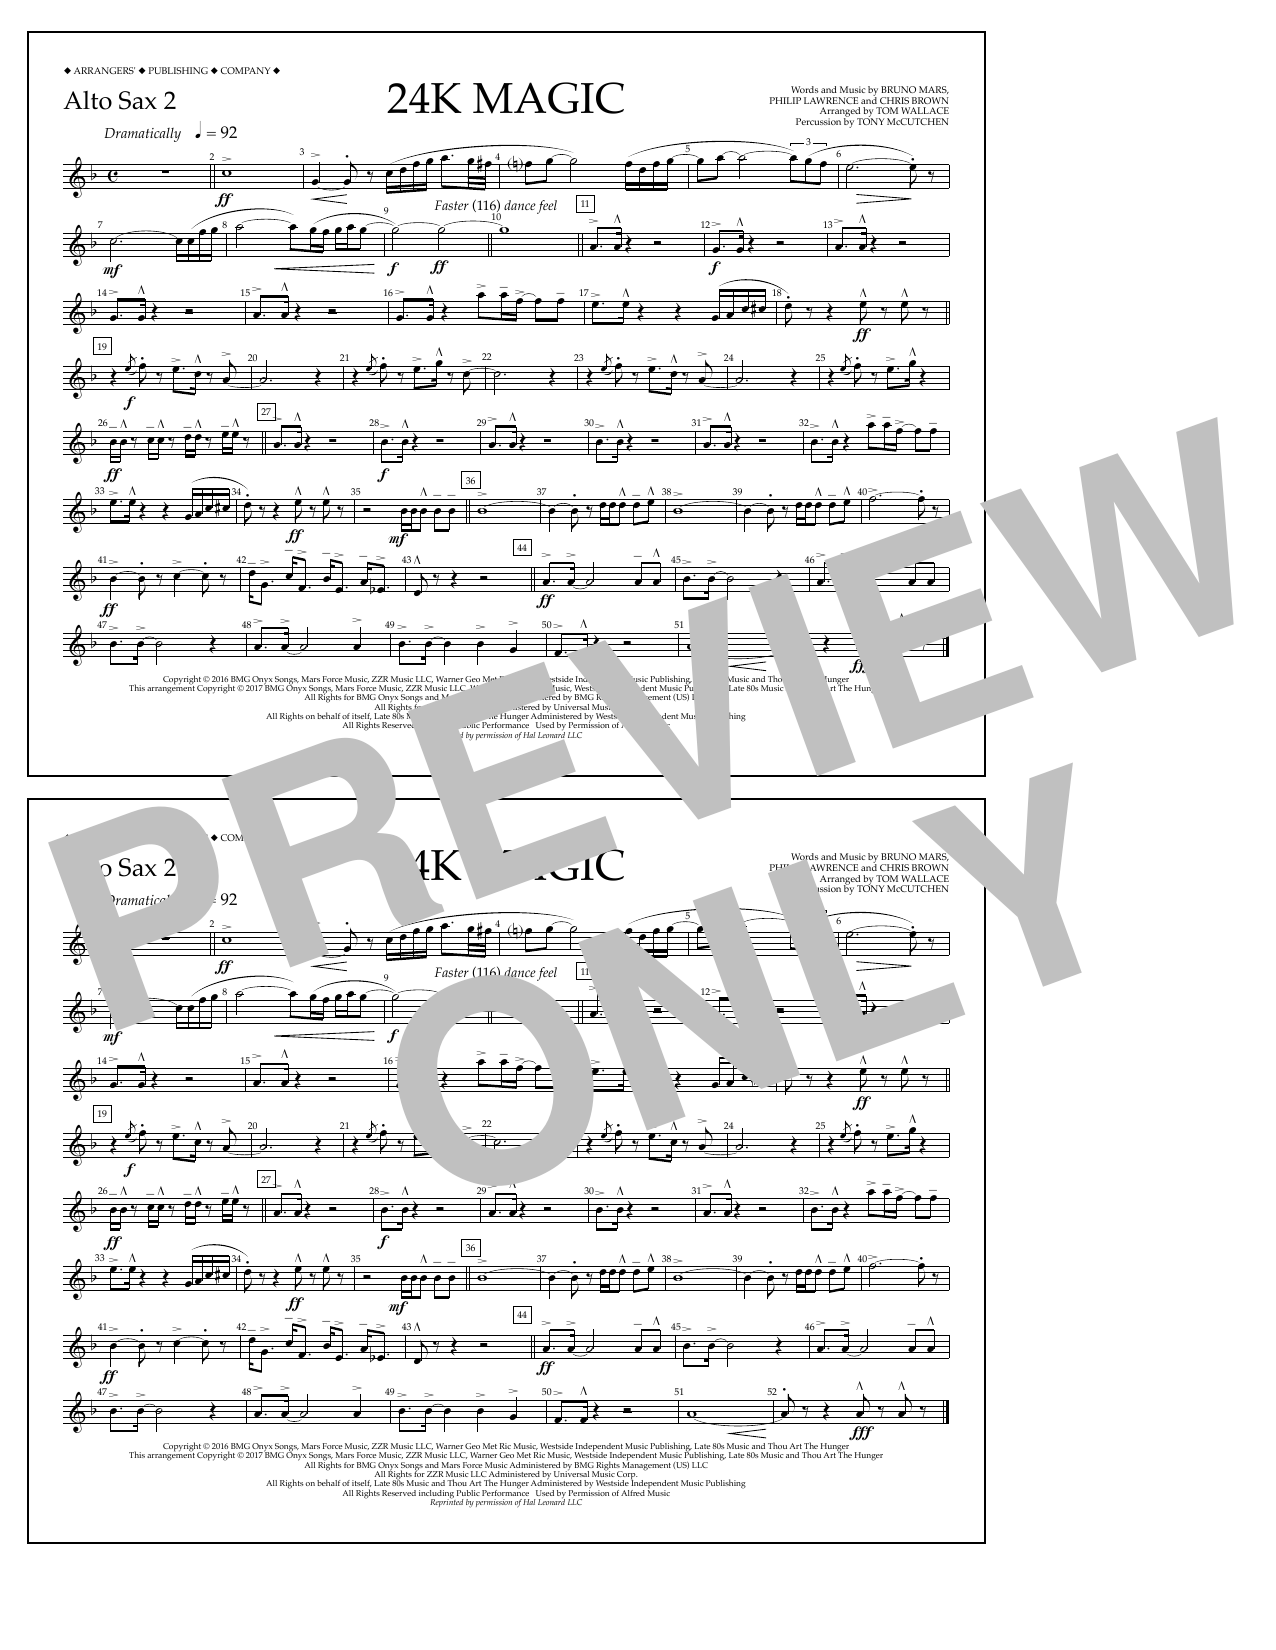 Tom Wallace 24K Magic - Alto Sax 2 sheet music preview music notes and score for Marching Band including 1 page(s)